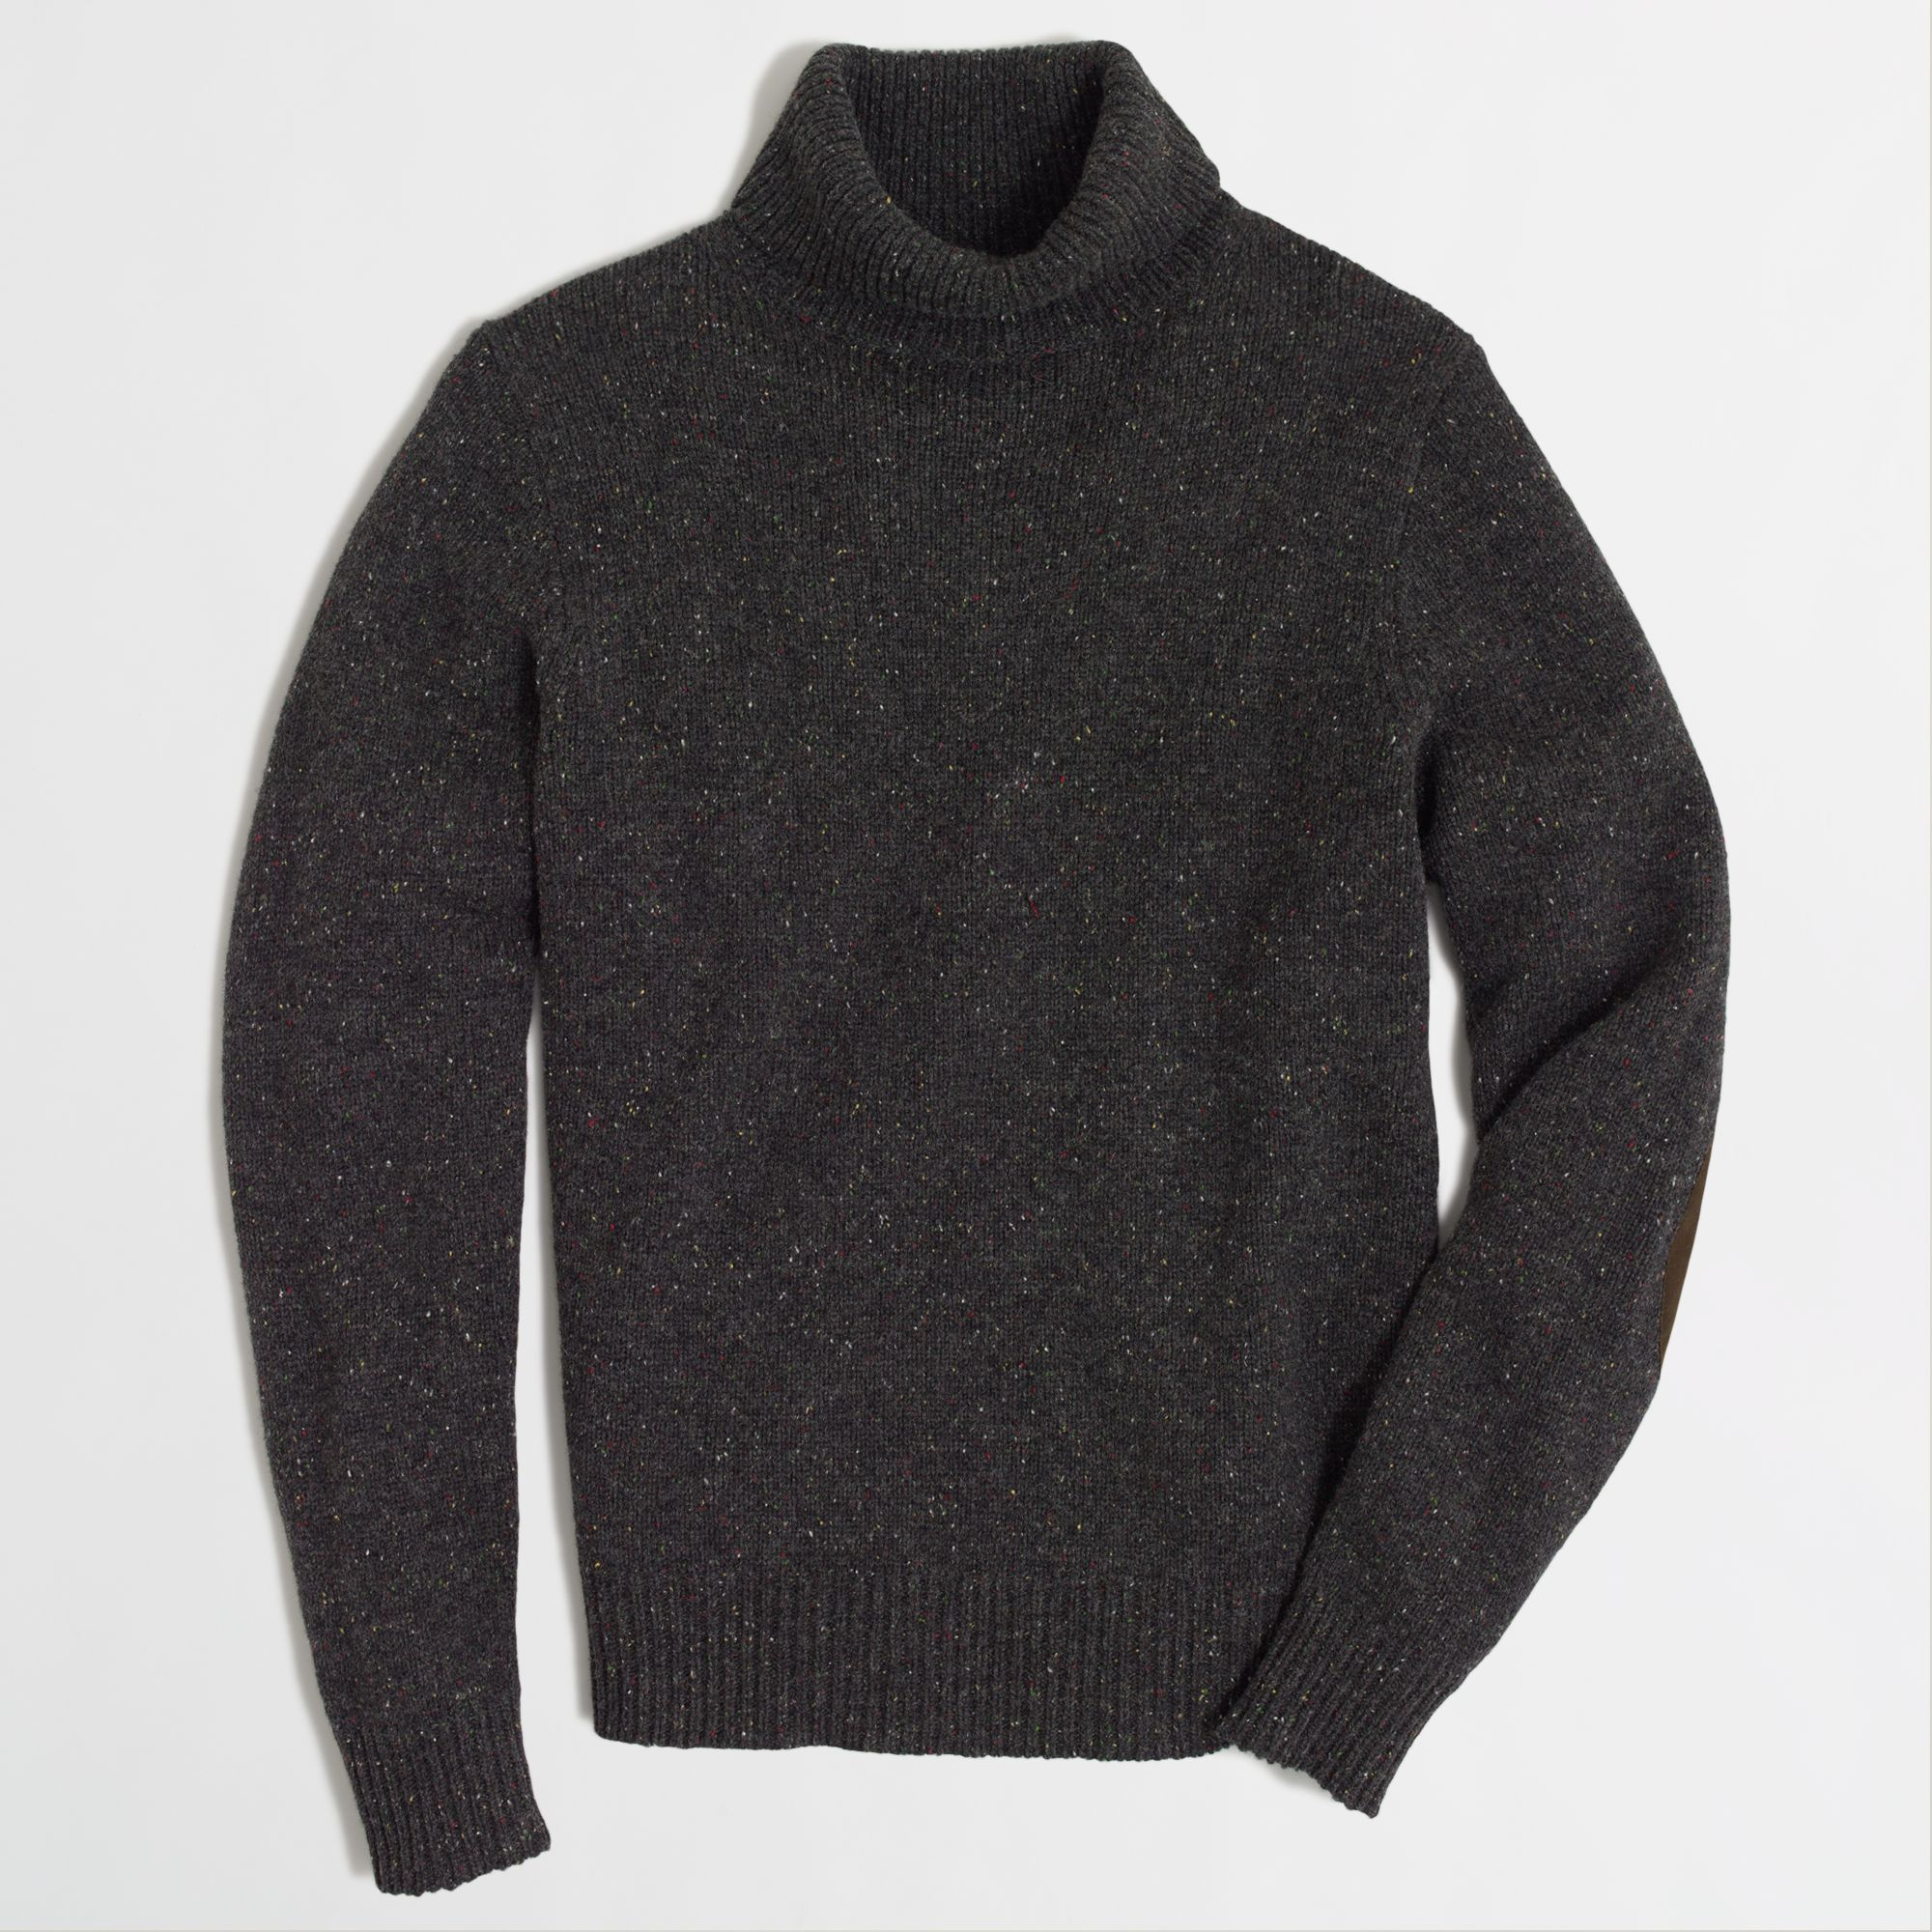 Donegal elbow patch sweater for men